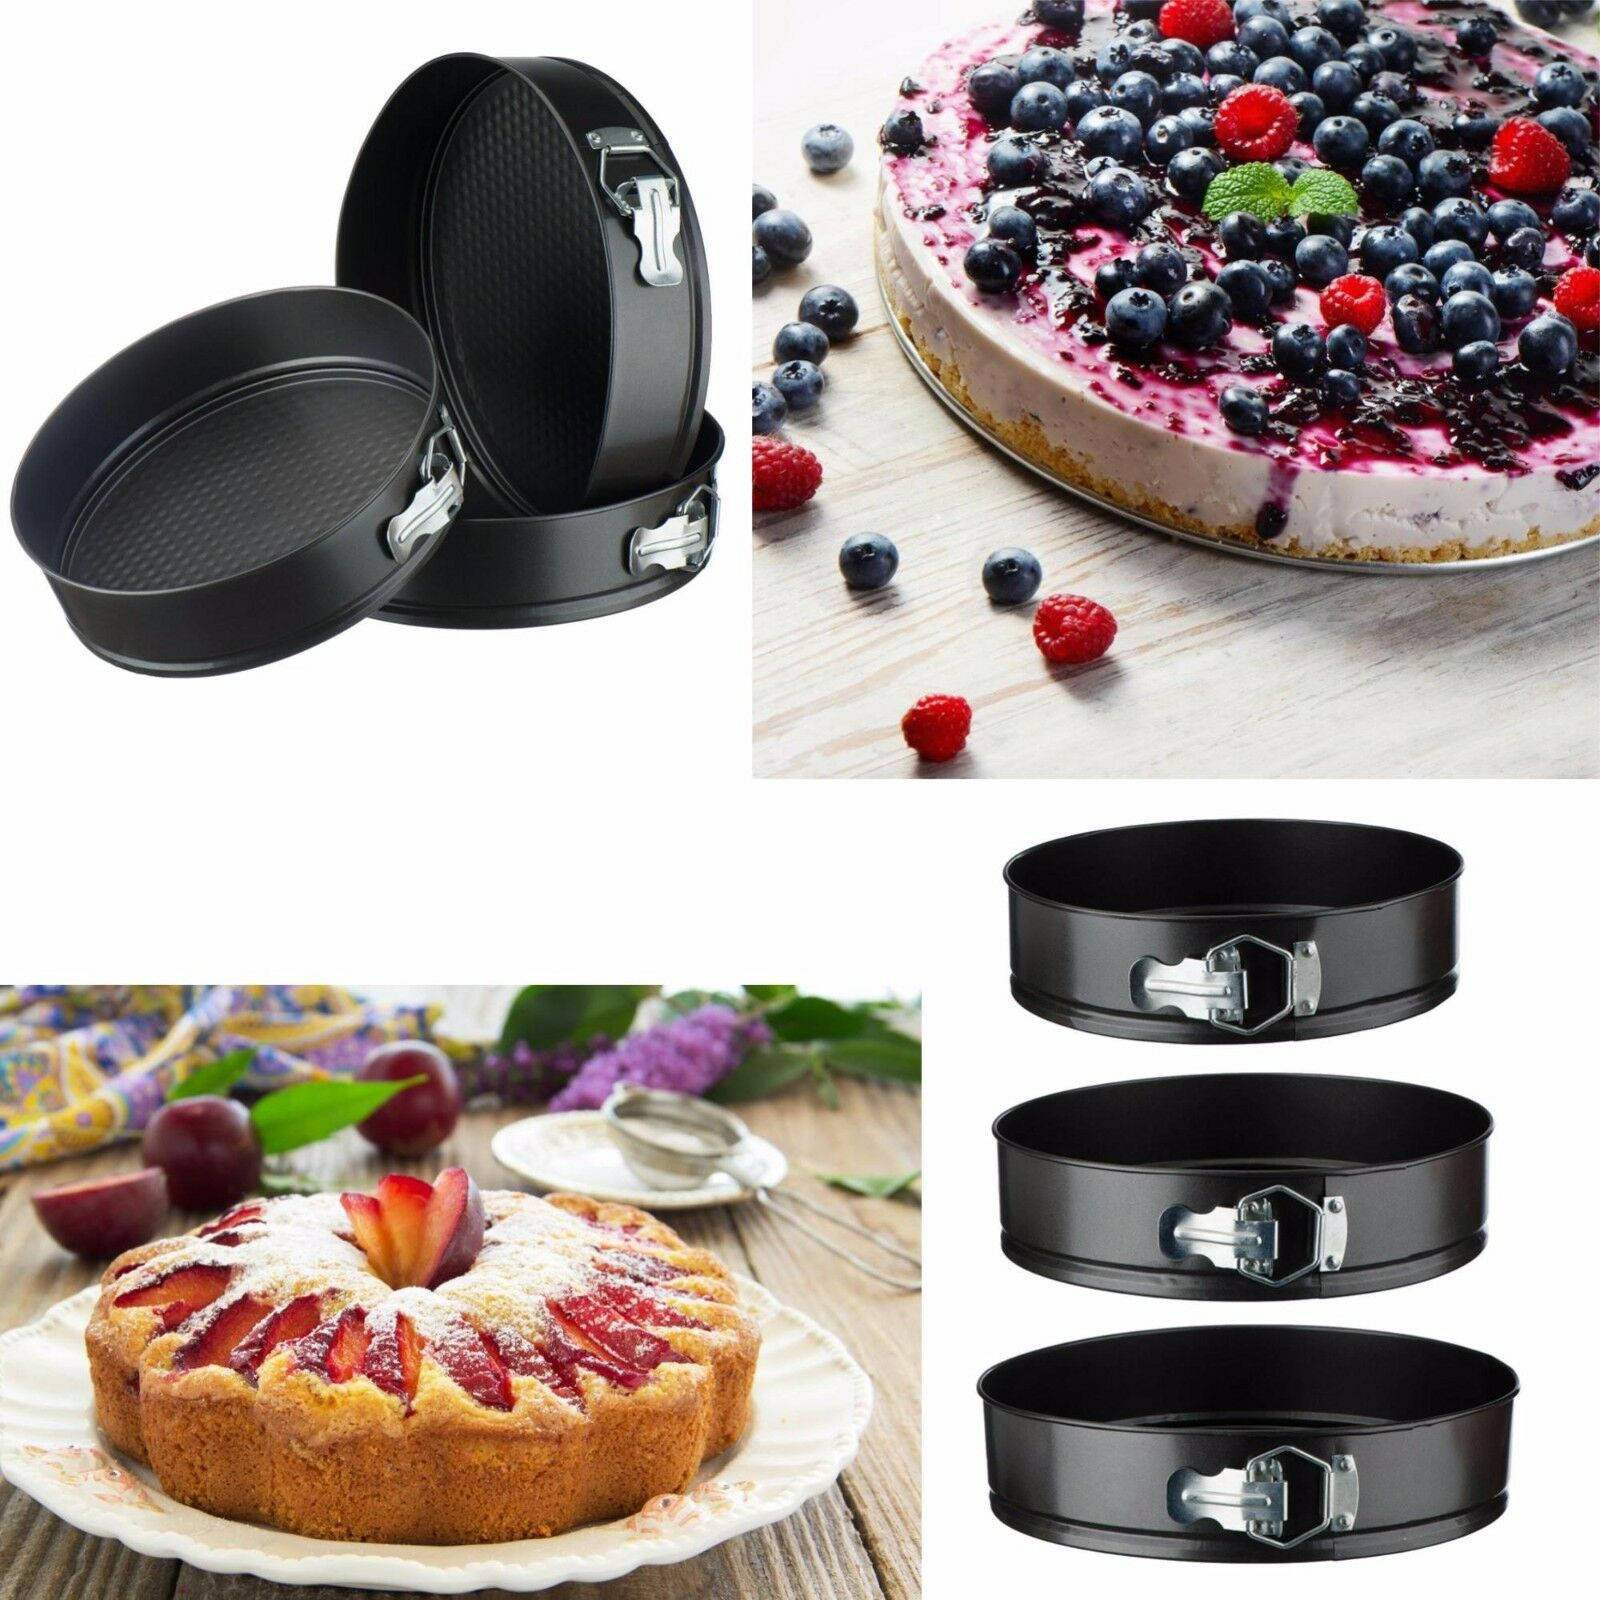 VonShef 3 pc Round Cake Pan Springform Baking Tins Set Weddi